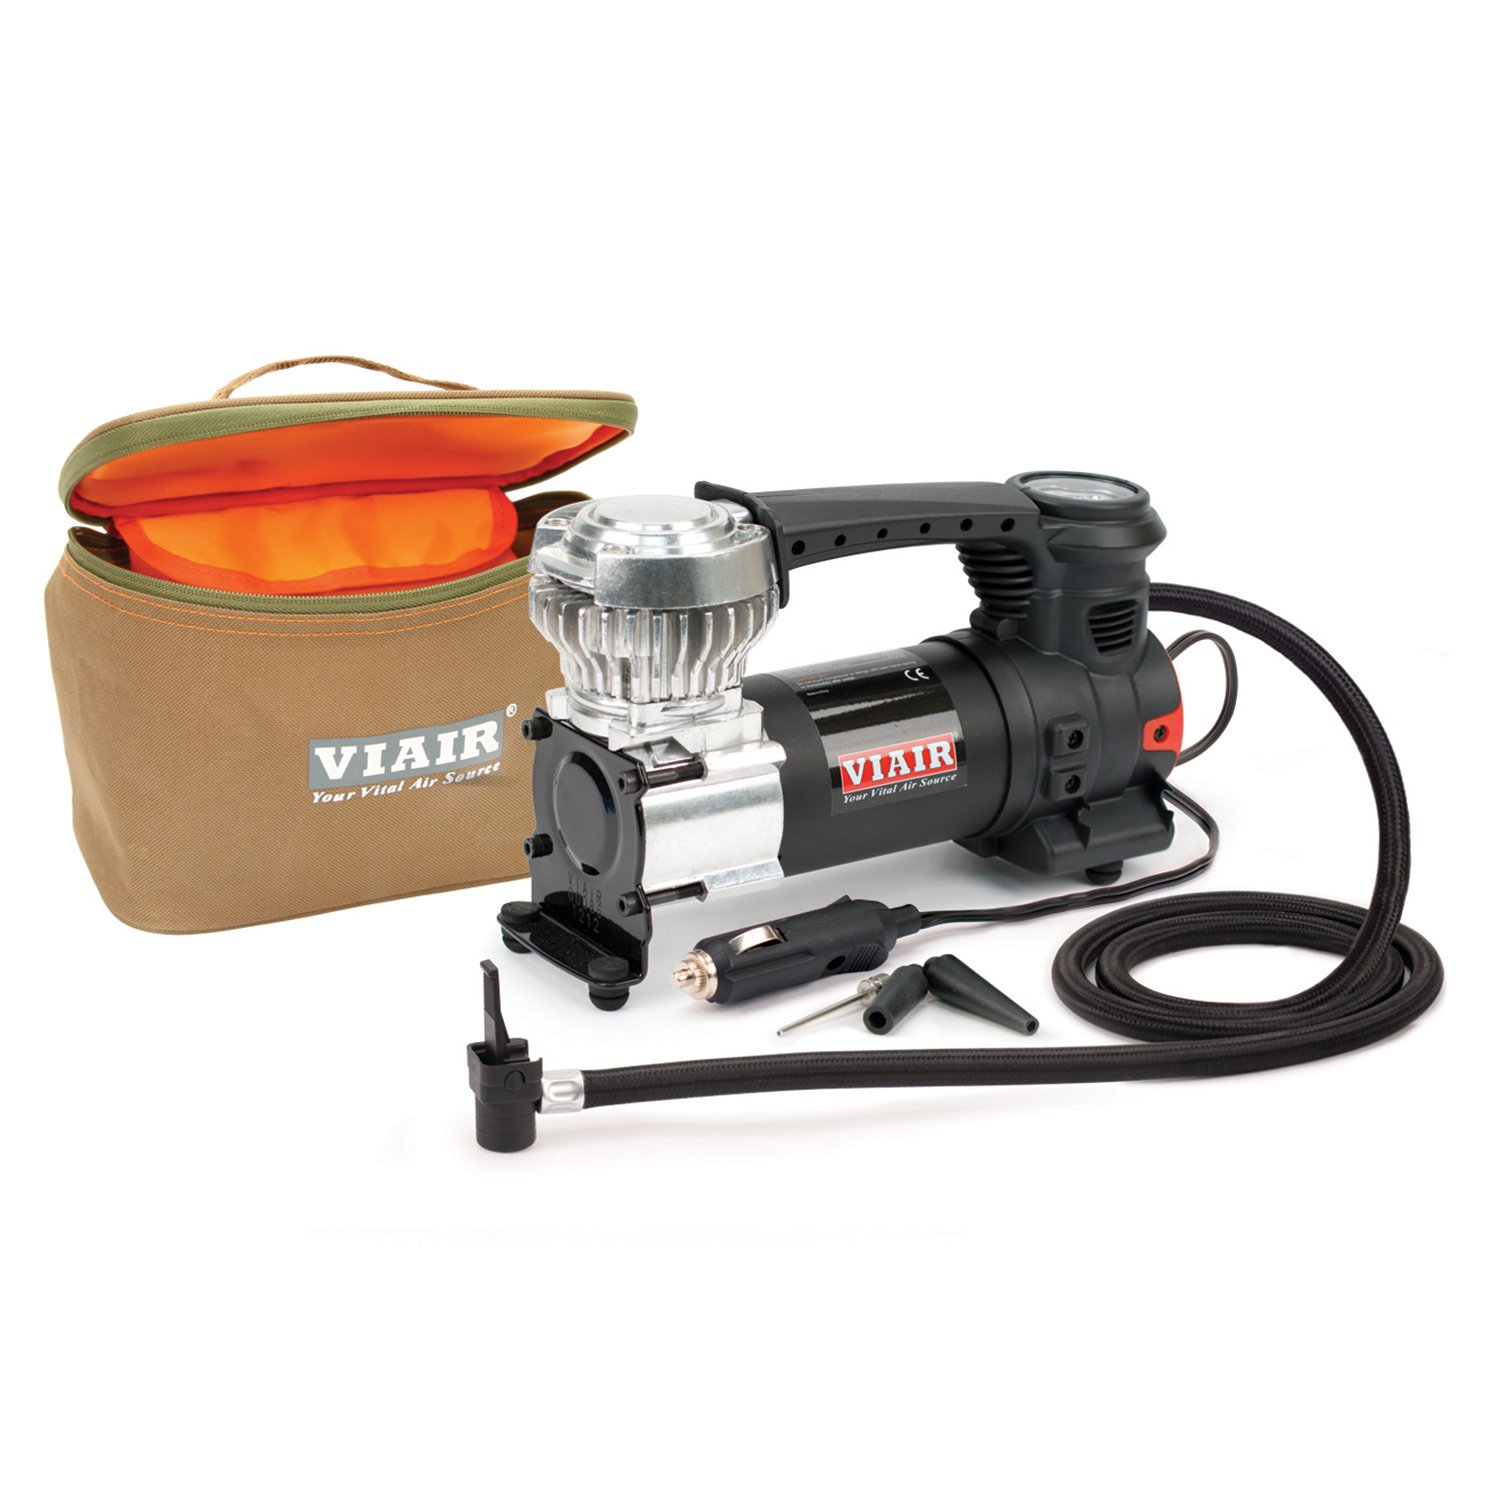 VIAIR 84P 60PSI 1.83 CFM 31 Inch Tires Press On Chuck Portable Air Compressor